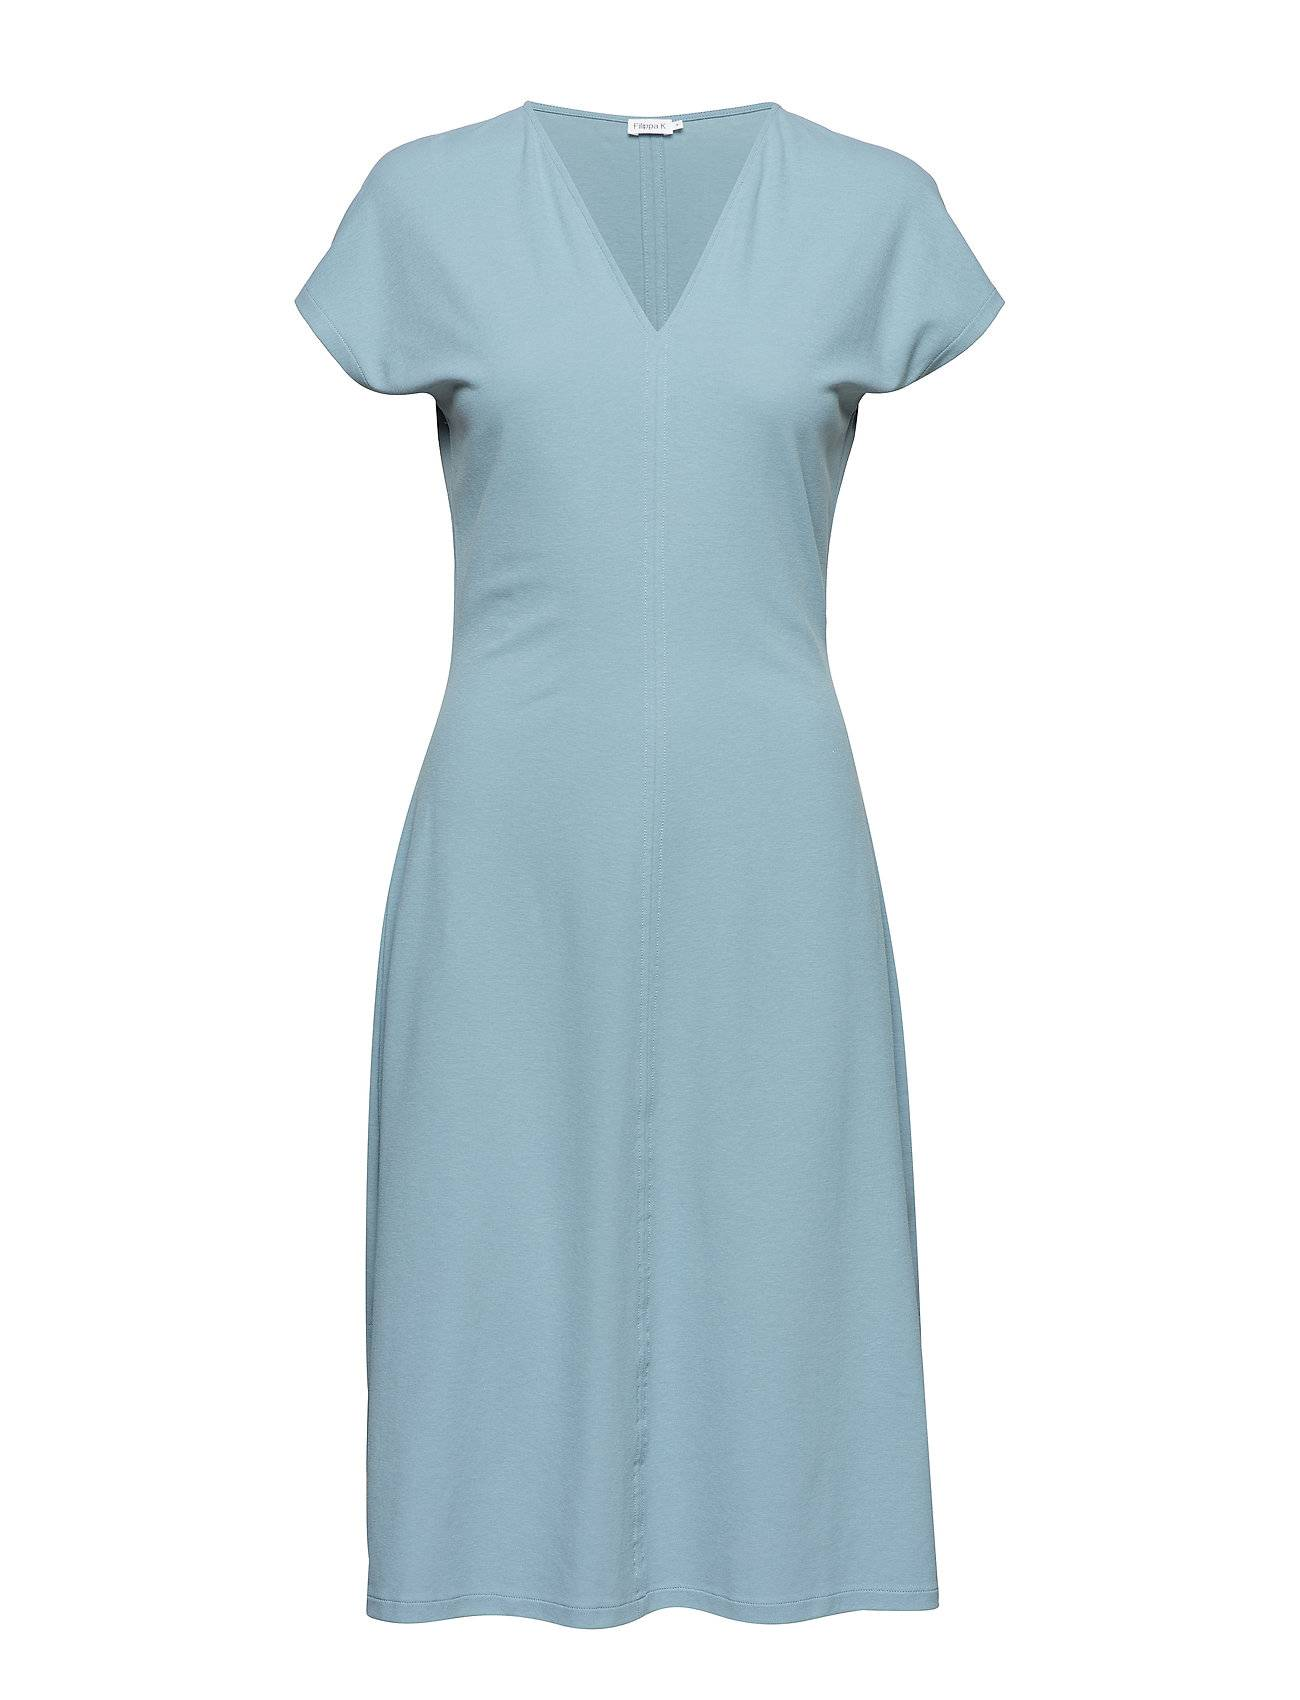 Filippa K Clean-Cut Cap Sleeve Dress